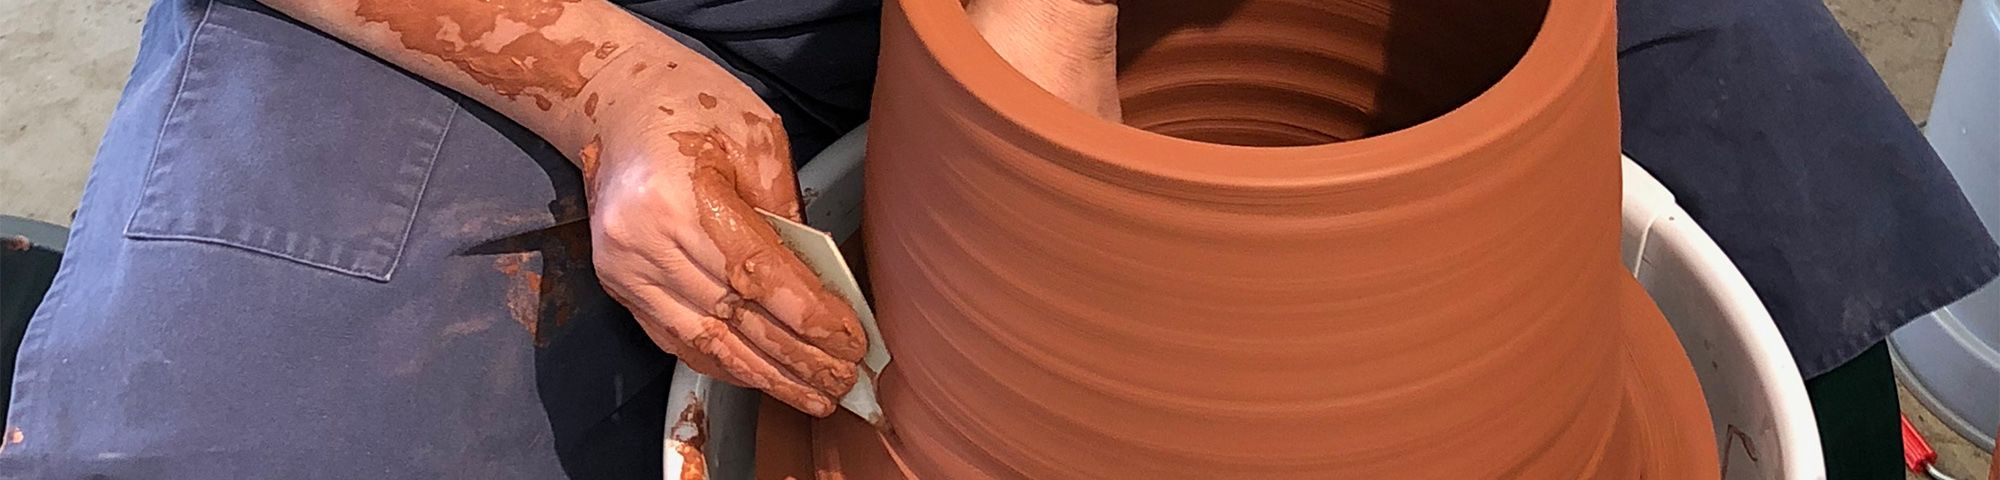 A man in the process of pottery